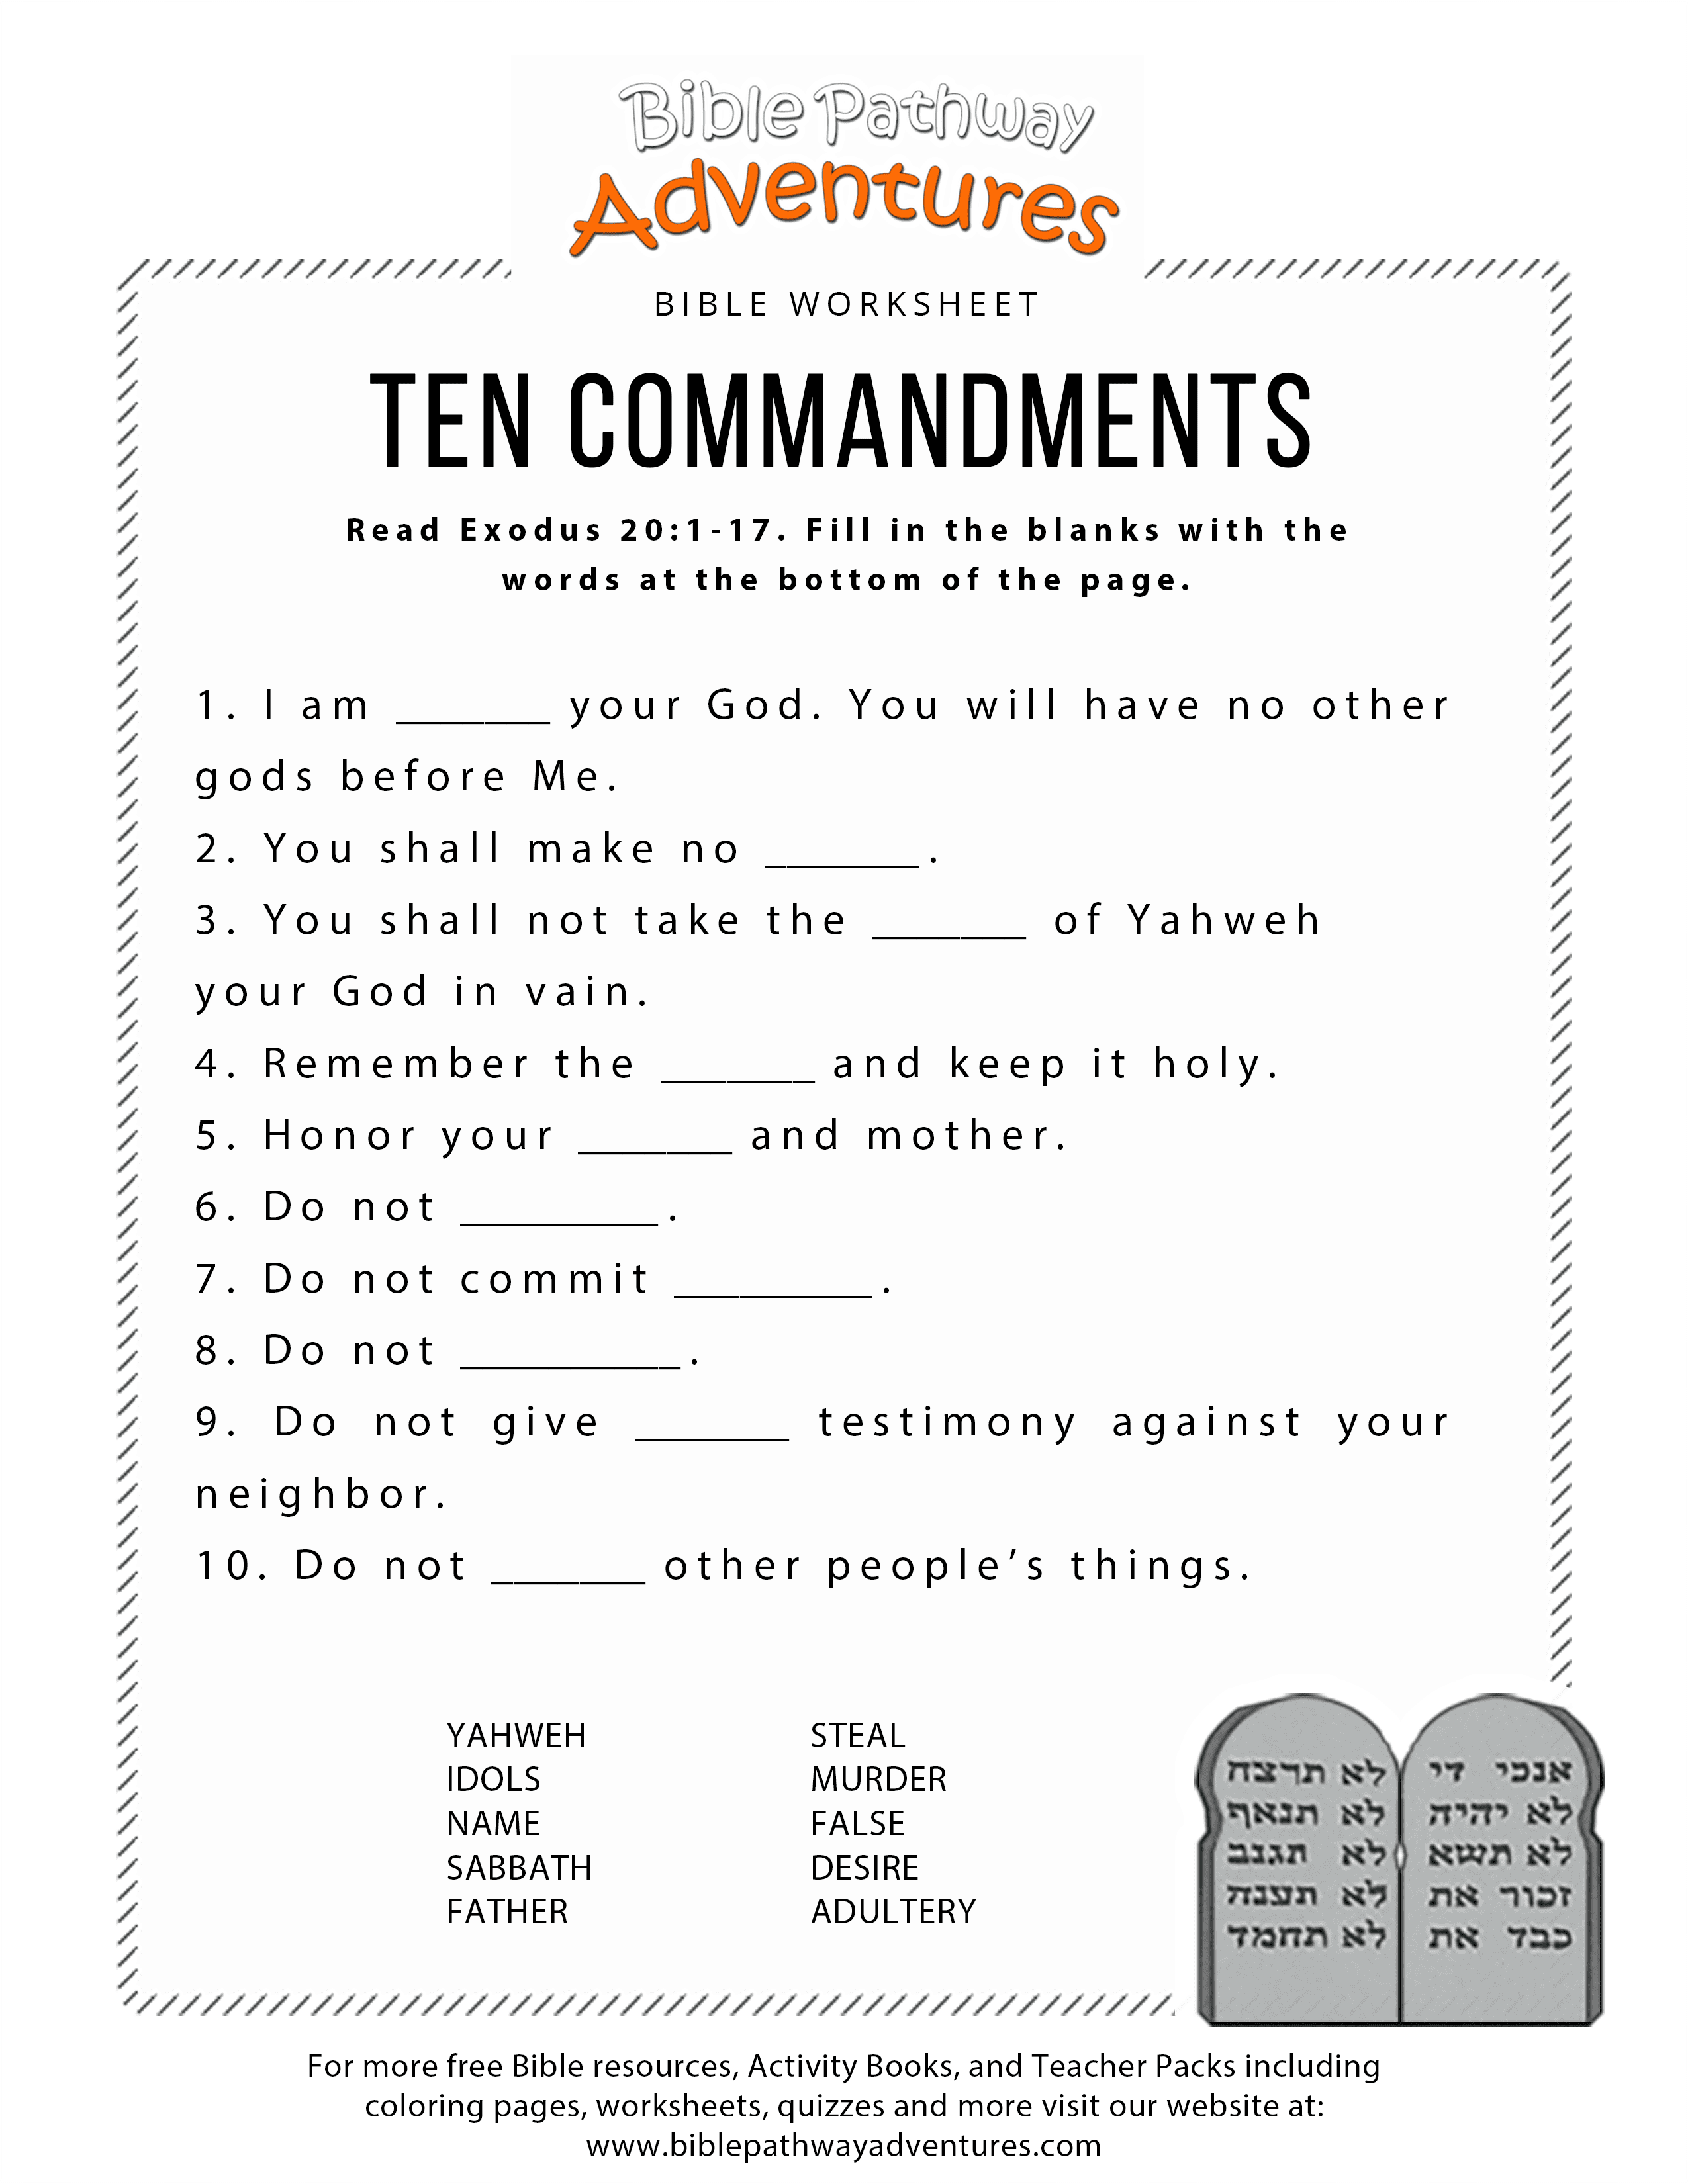 Ten Commandments Worksheet For Kids With Images